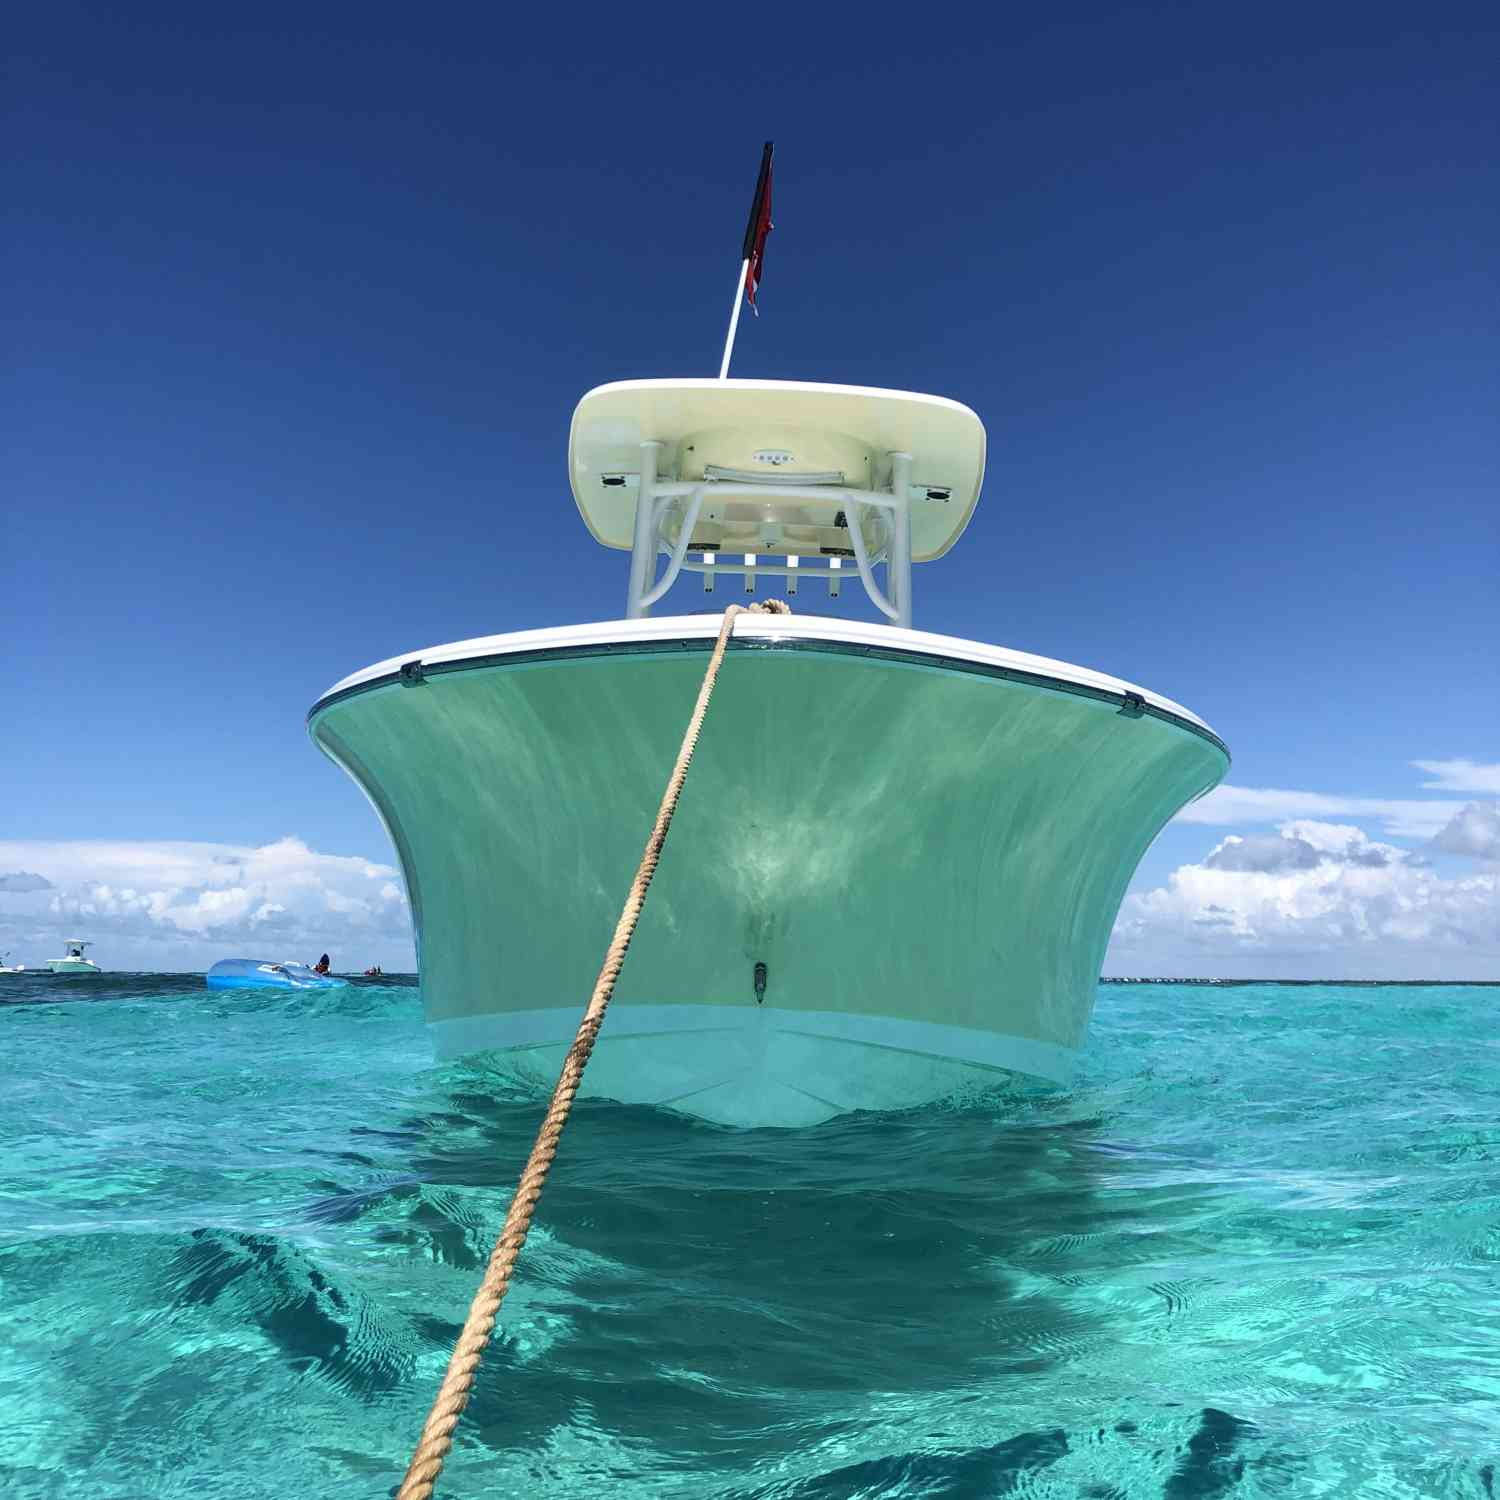 Title: Crystal Clear - On board their Sportsman Heritage 231 Center Console - Location: Key largo FL. Participating in the Photo Contest #SportsmanFebruary2021